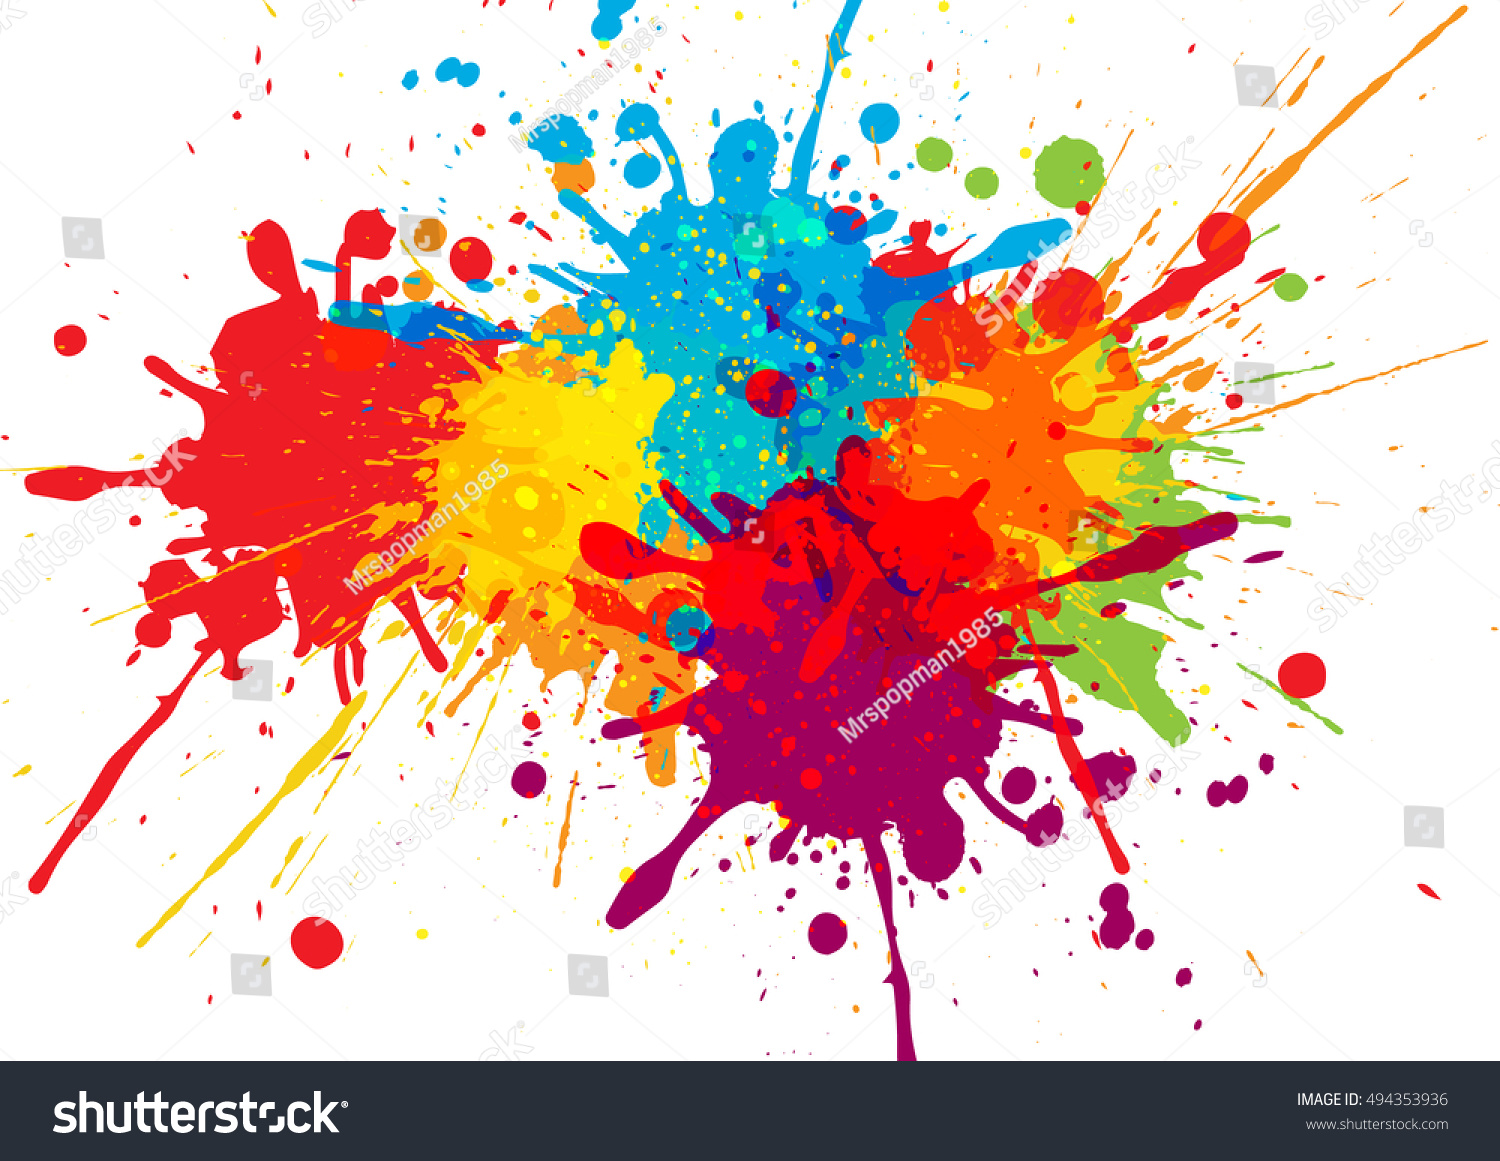 Vector colorful background design illustration vector design